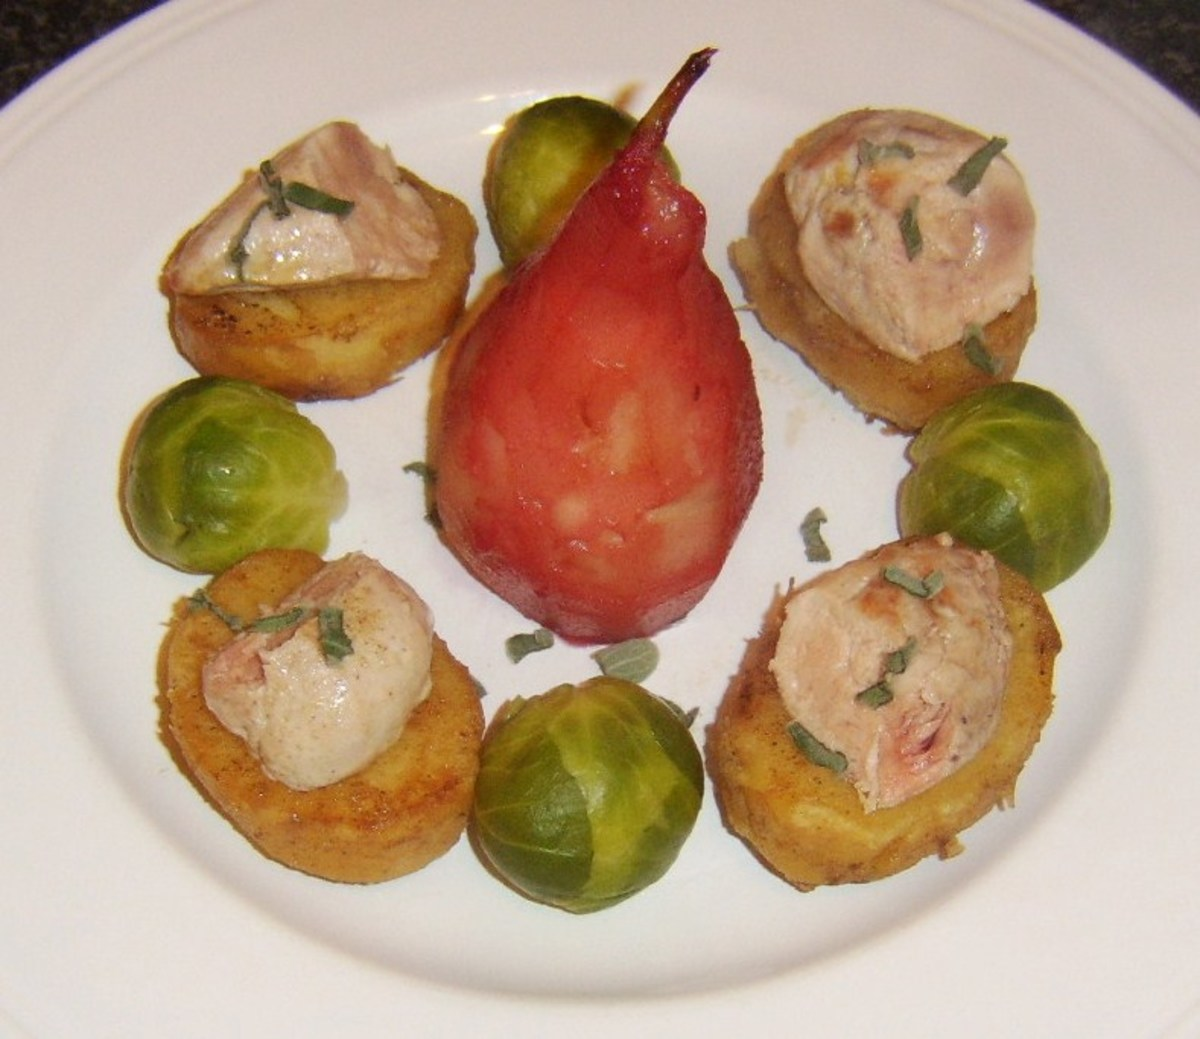 Pan fried partridge breasts are halved and served on fondant potatoes with a pear poached in cranberry juice centrepiece